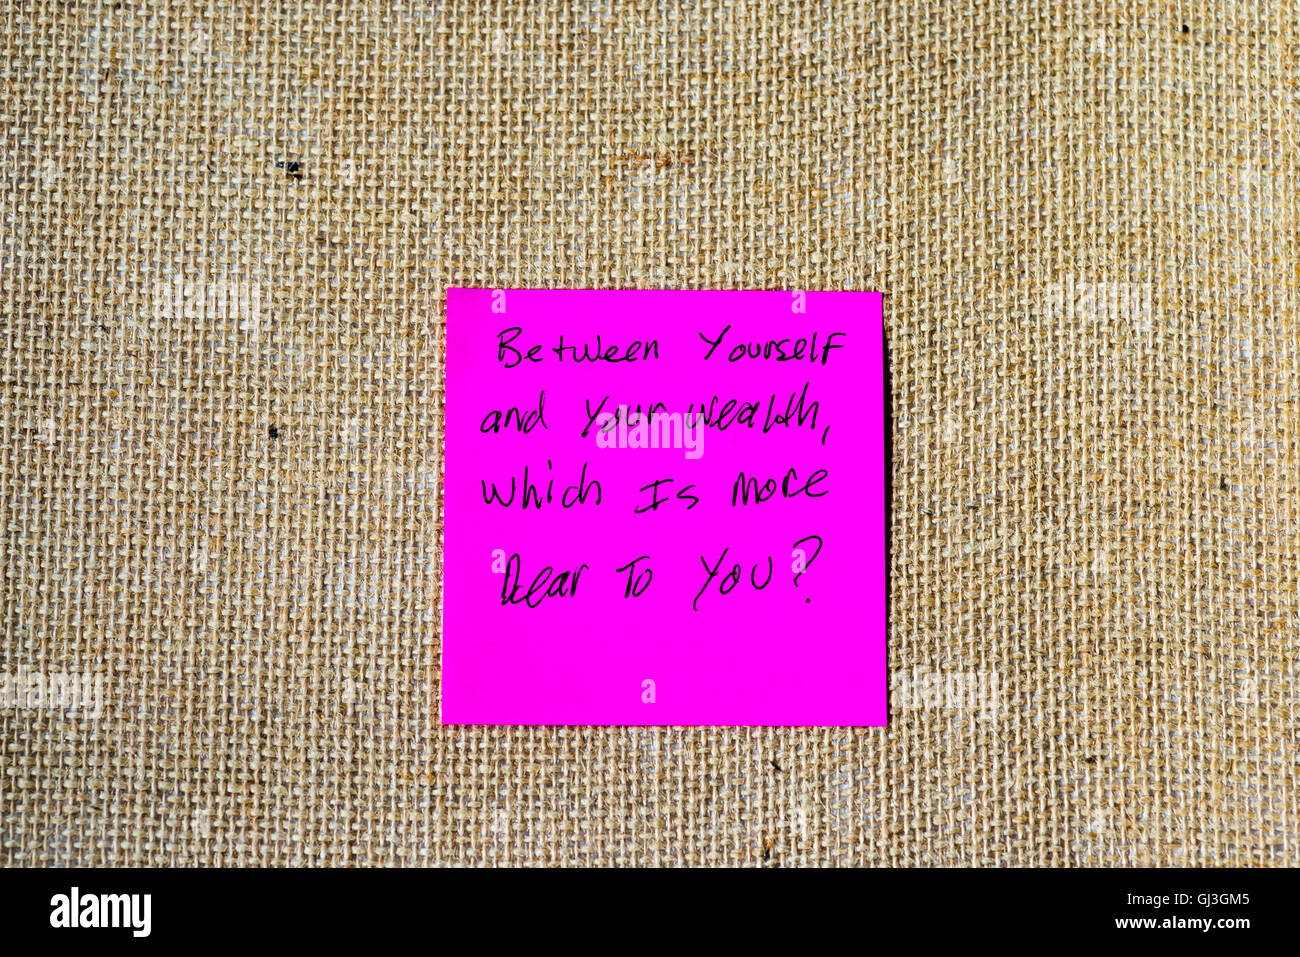 famous quote from the Tao Te Ching written on sticky notes, burlap background. - Stock Image